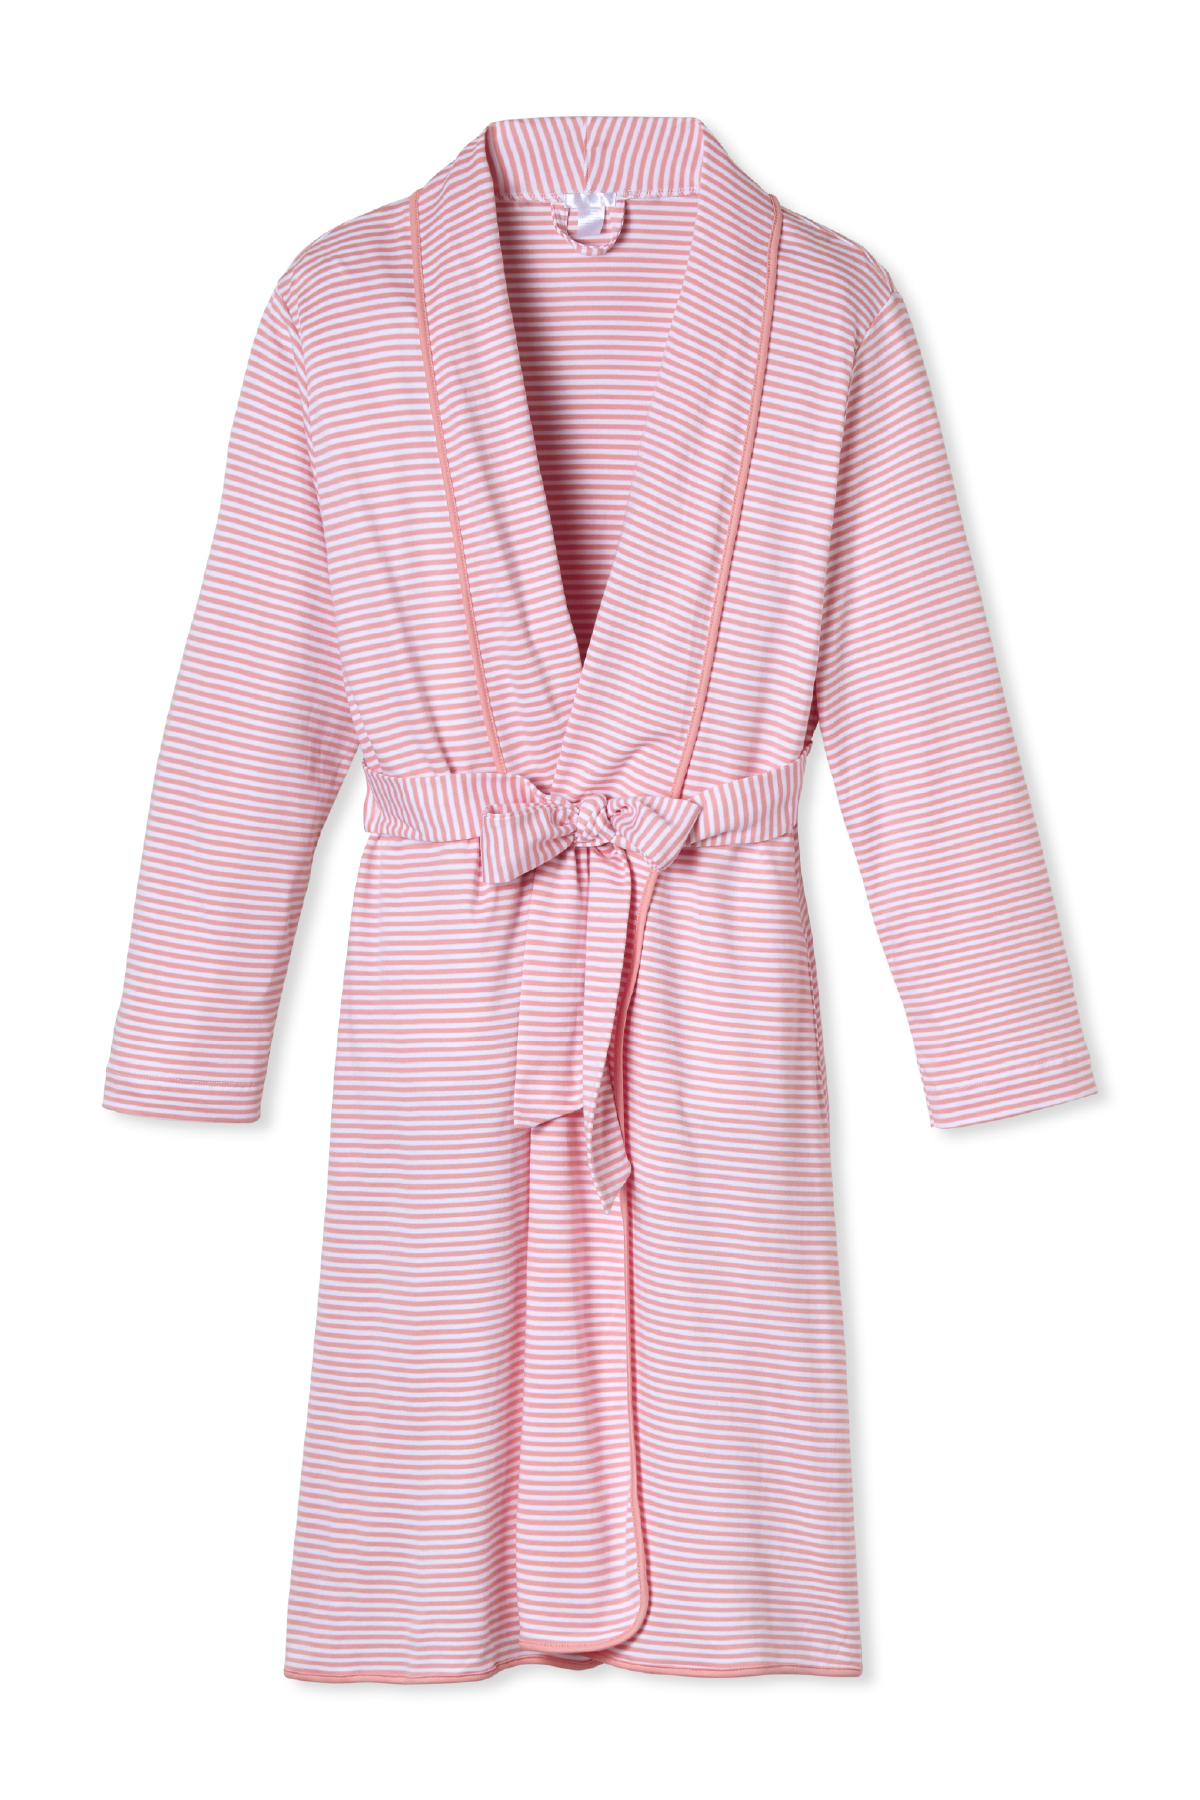 Pima Robe in Posy